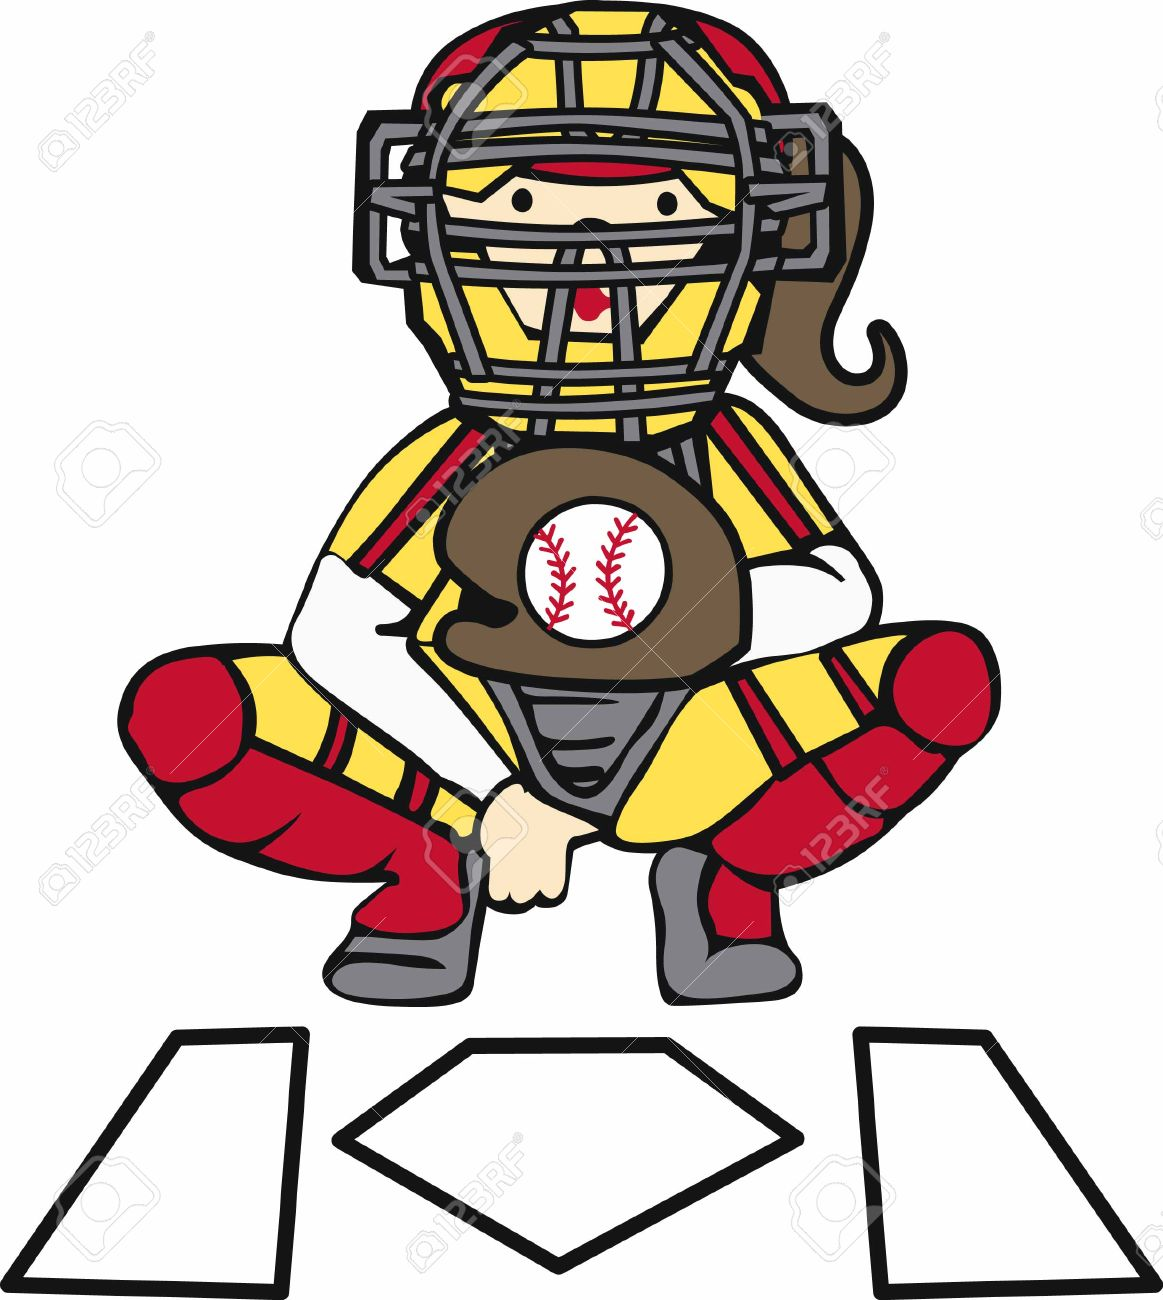 hight resolution of 210 girls softball stock illustrations cliparts and royalty free